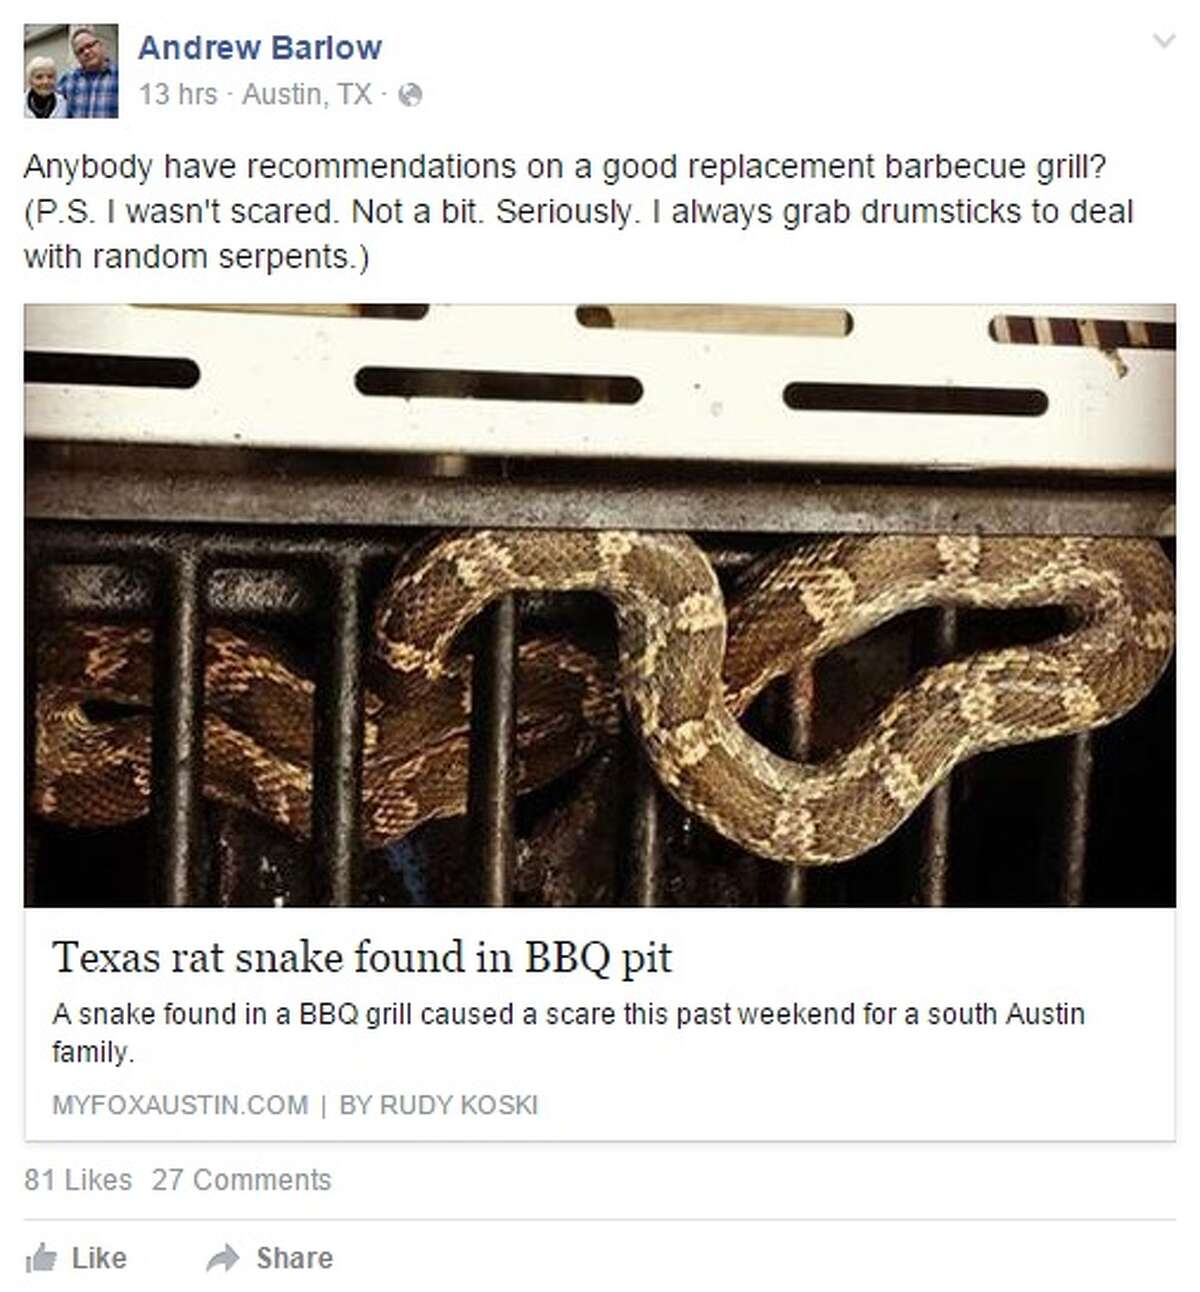 Austin man Andrew Barlow found this Texas rat snake in his barbecue pit on Sunday, July 19, 2015. He posted on Facebook: